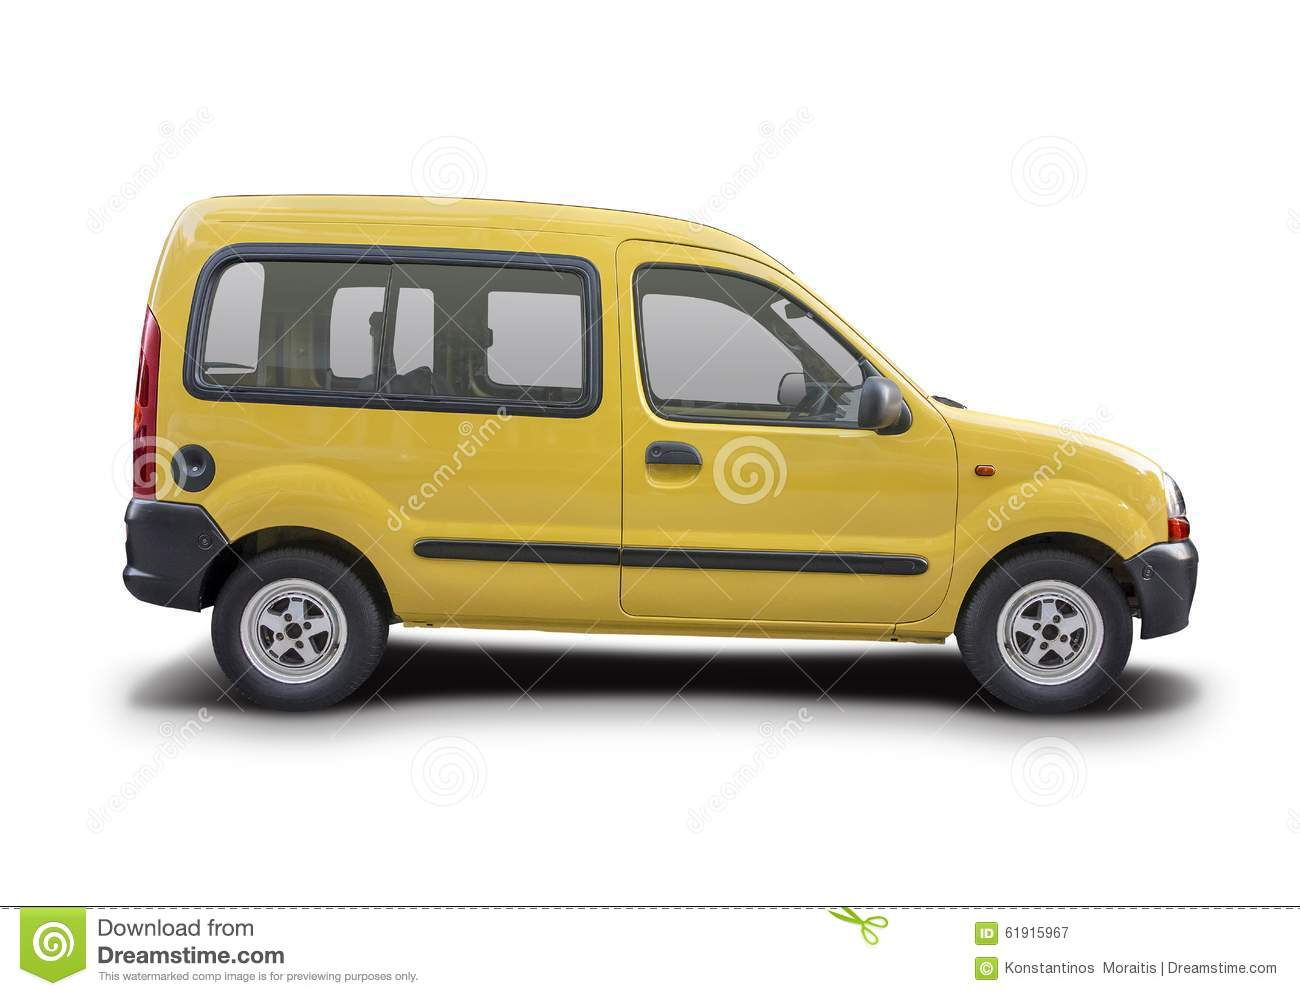 renault kangoo express 2010 vector illustration. Black Bedroom Furniture Sets. Home Design Ideas